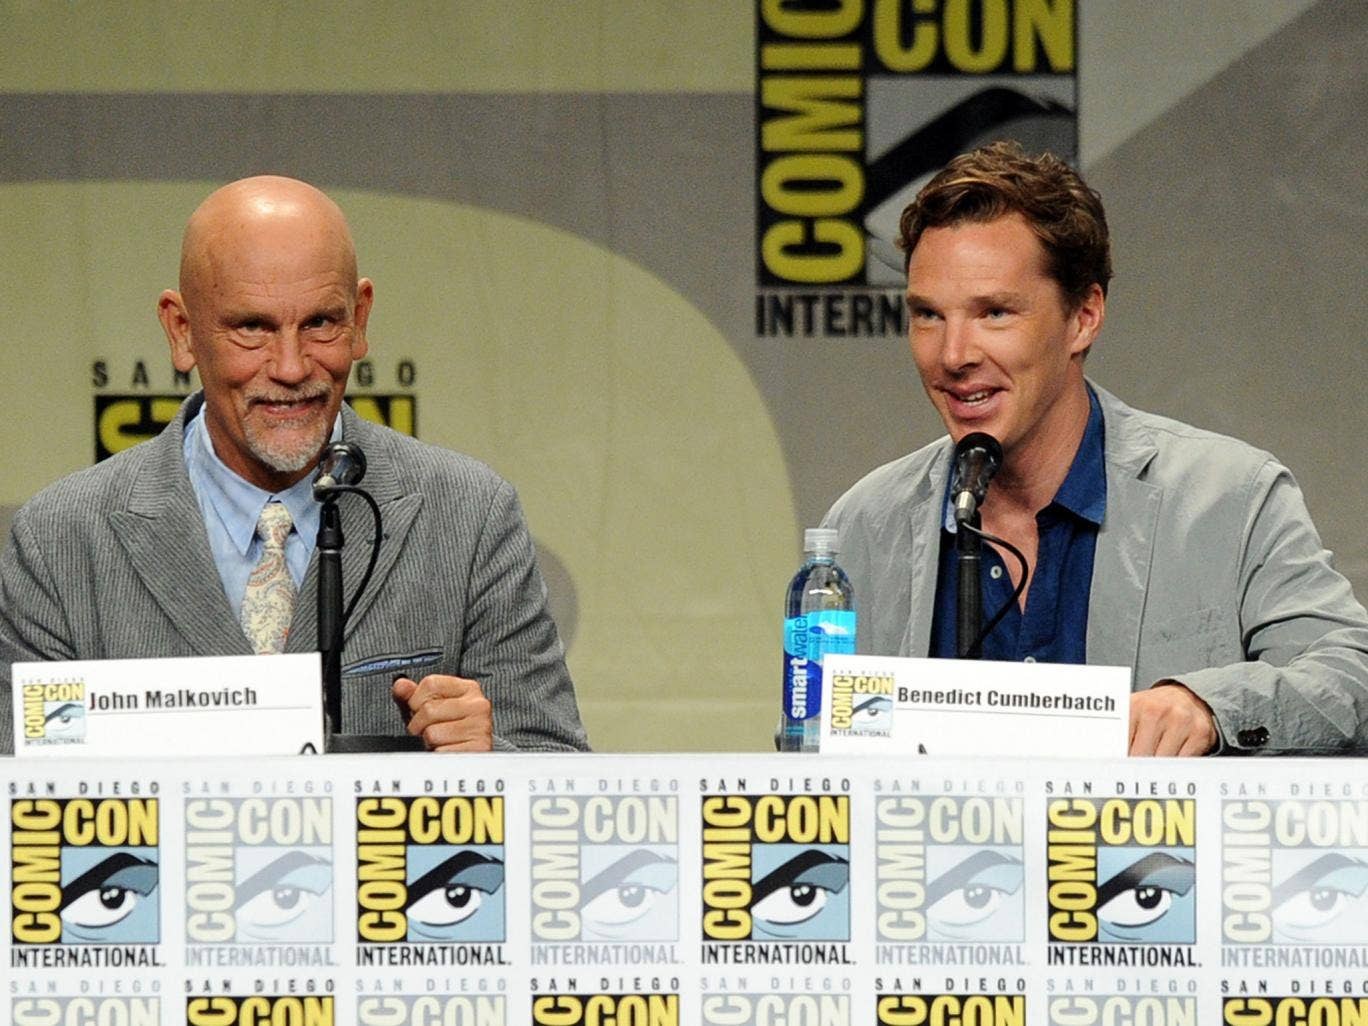 Benedict Cumberbatch and John Malkovich talk Penguins of Madagascar at Comic-Con